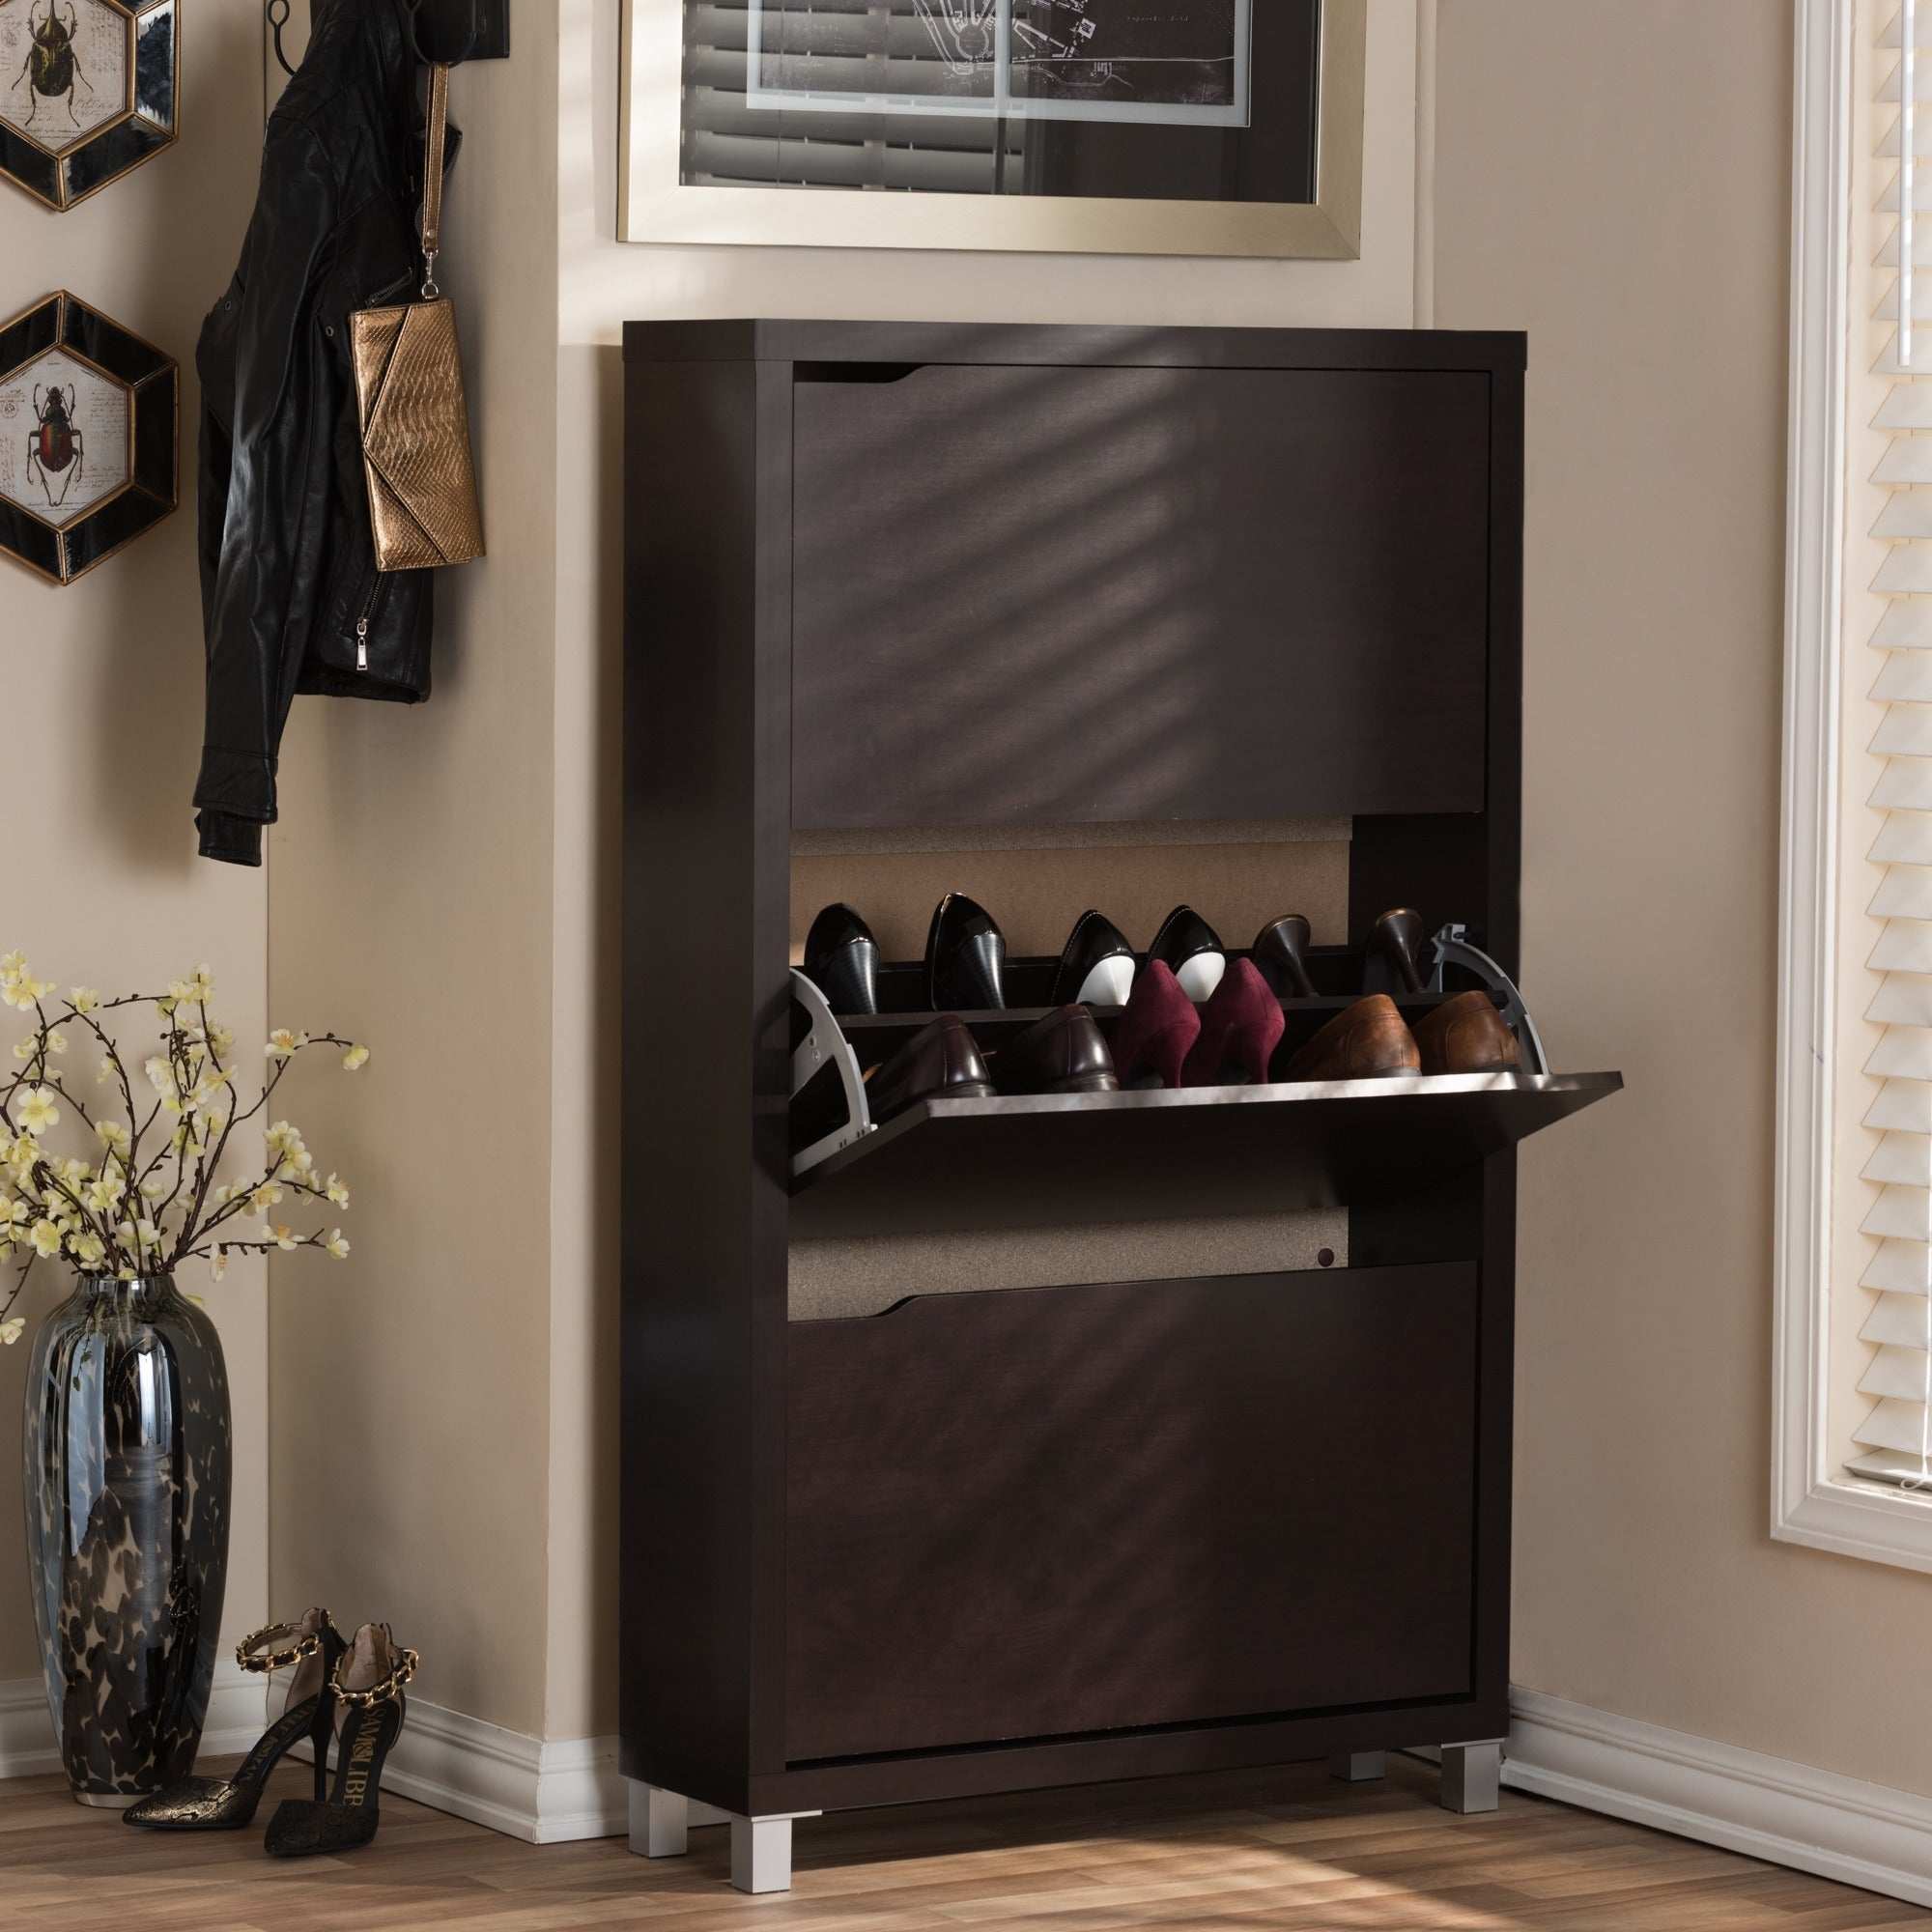 simms white modern shoe cabinet  free shipping today  overstockcom . simms white modern shoe cabinet  free shipping today  overstock